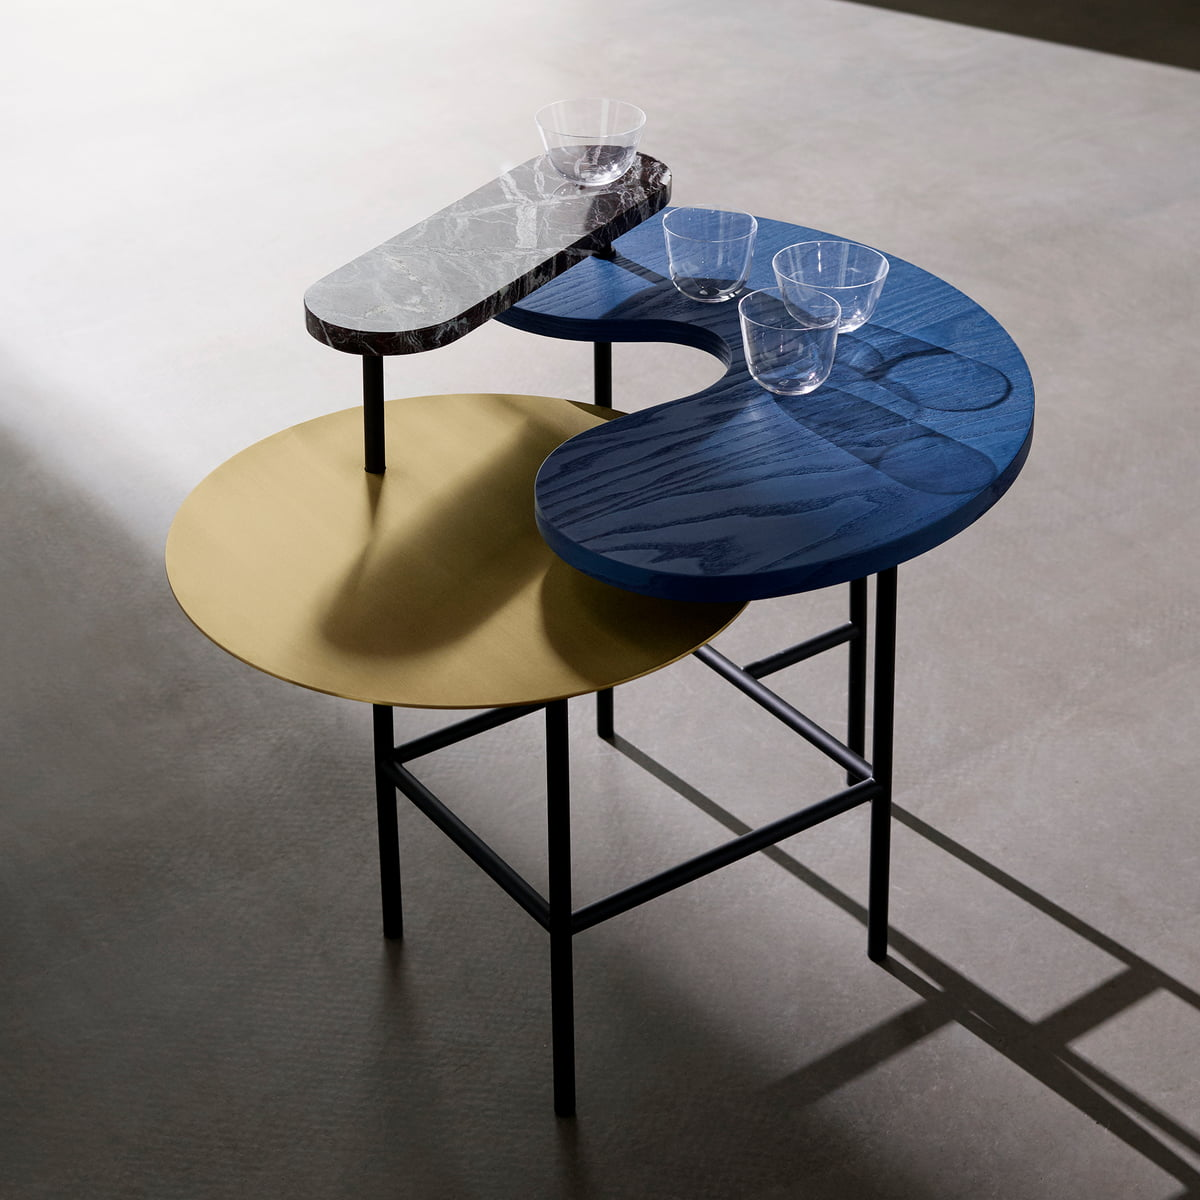 Palette table jh8 by tradition online - Table palette ...